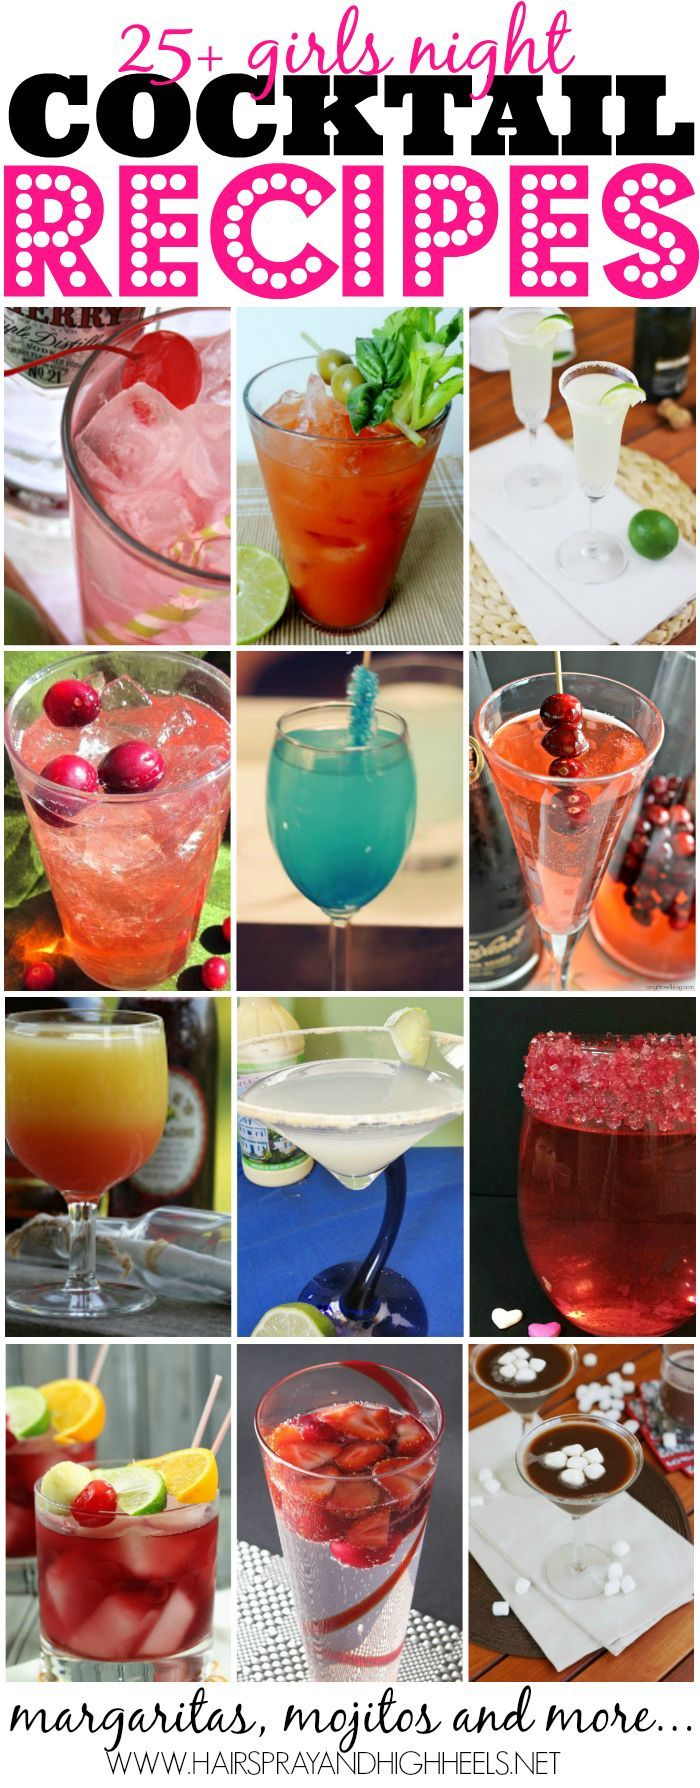 25 Girls Night Cocktail Recipes  via www.hairsprayandhighheels.com @Krista McNamara McNamara McNamara McNamara Knight and HighHeels